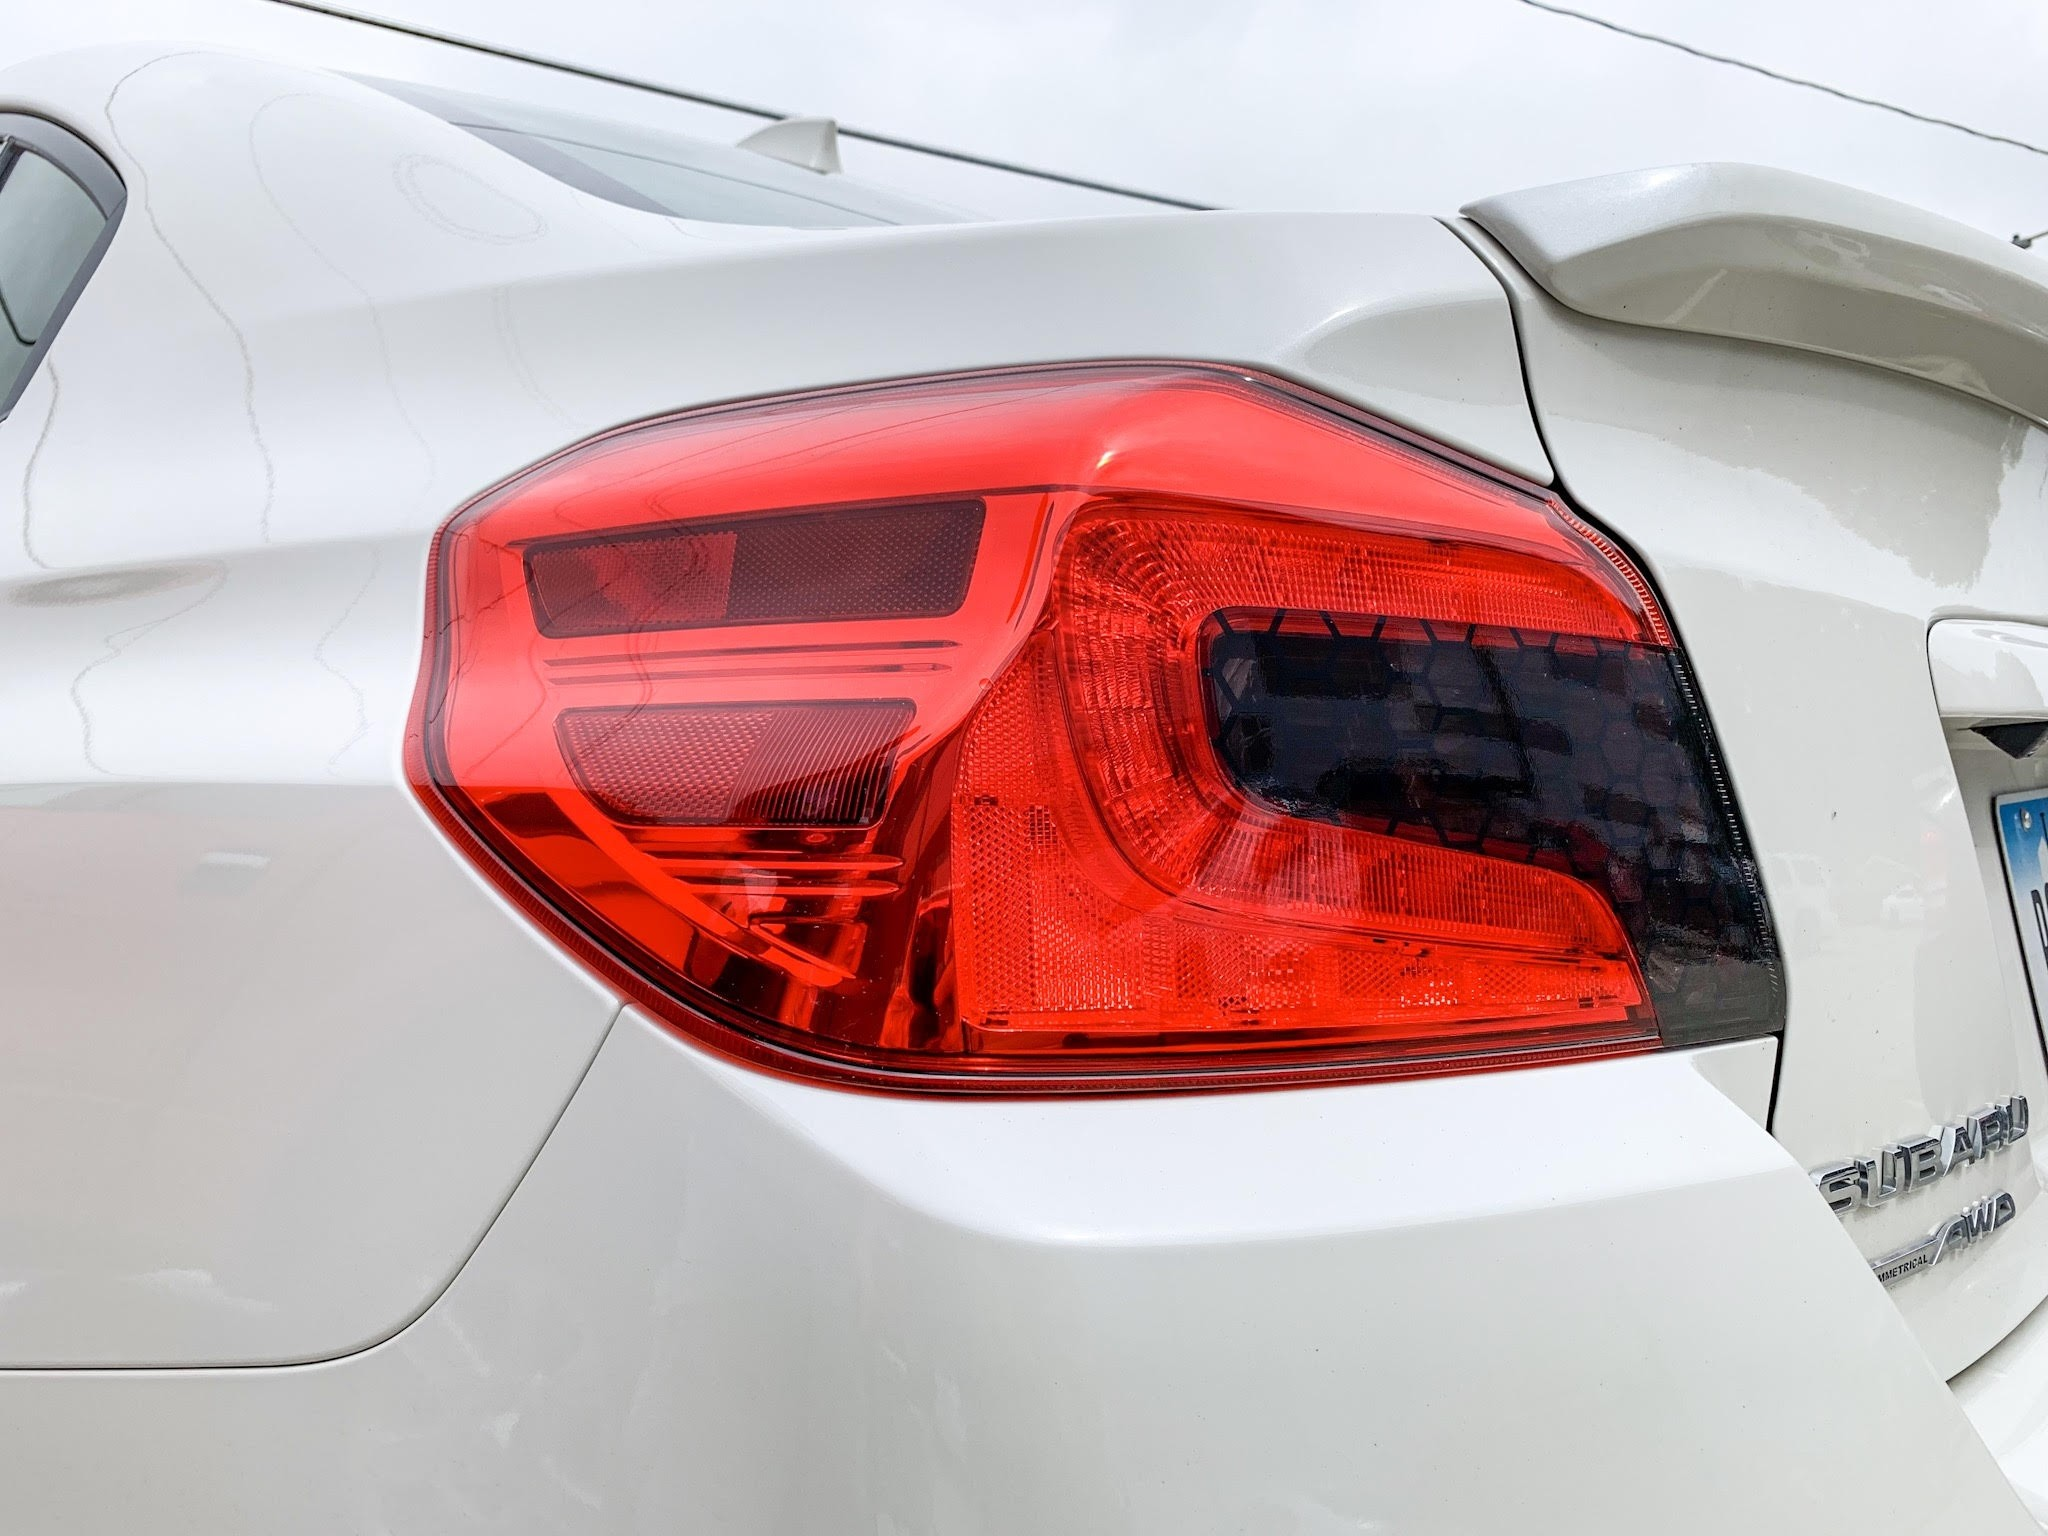 Sticker Fab Special Edition Honeycomb Smoked Tail Light Tint